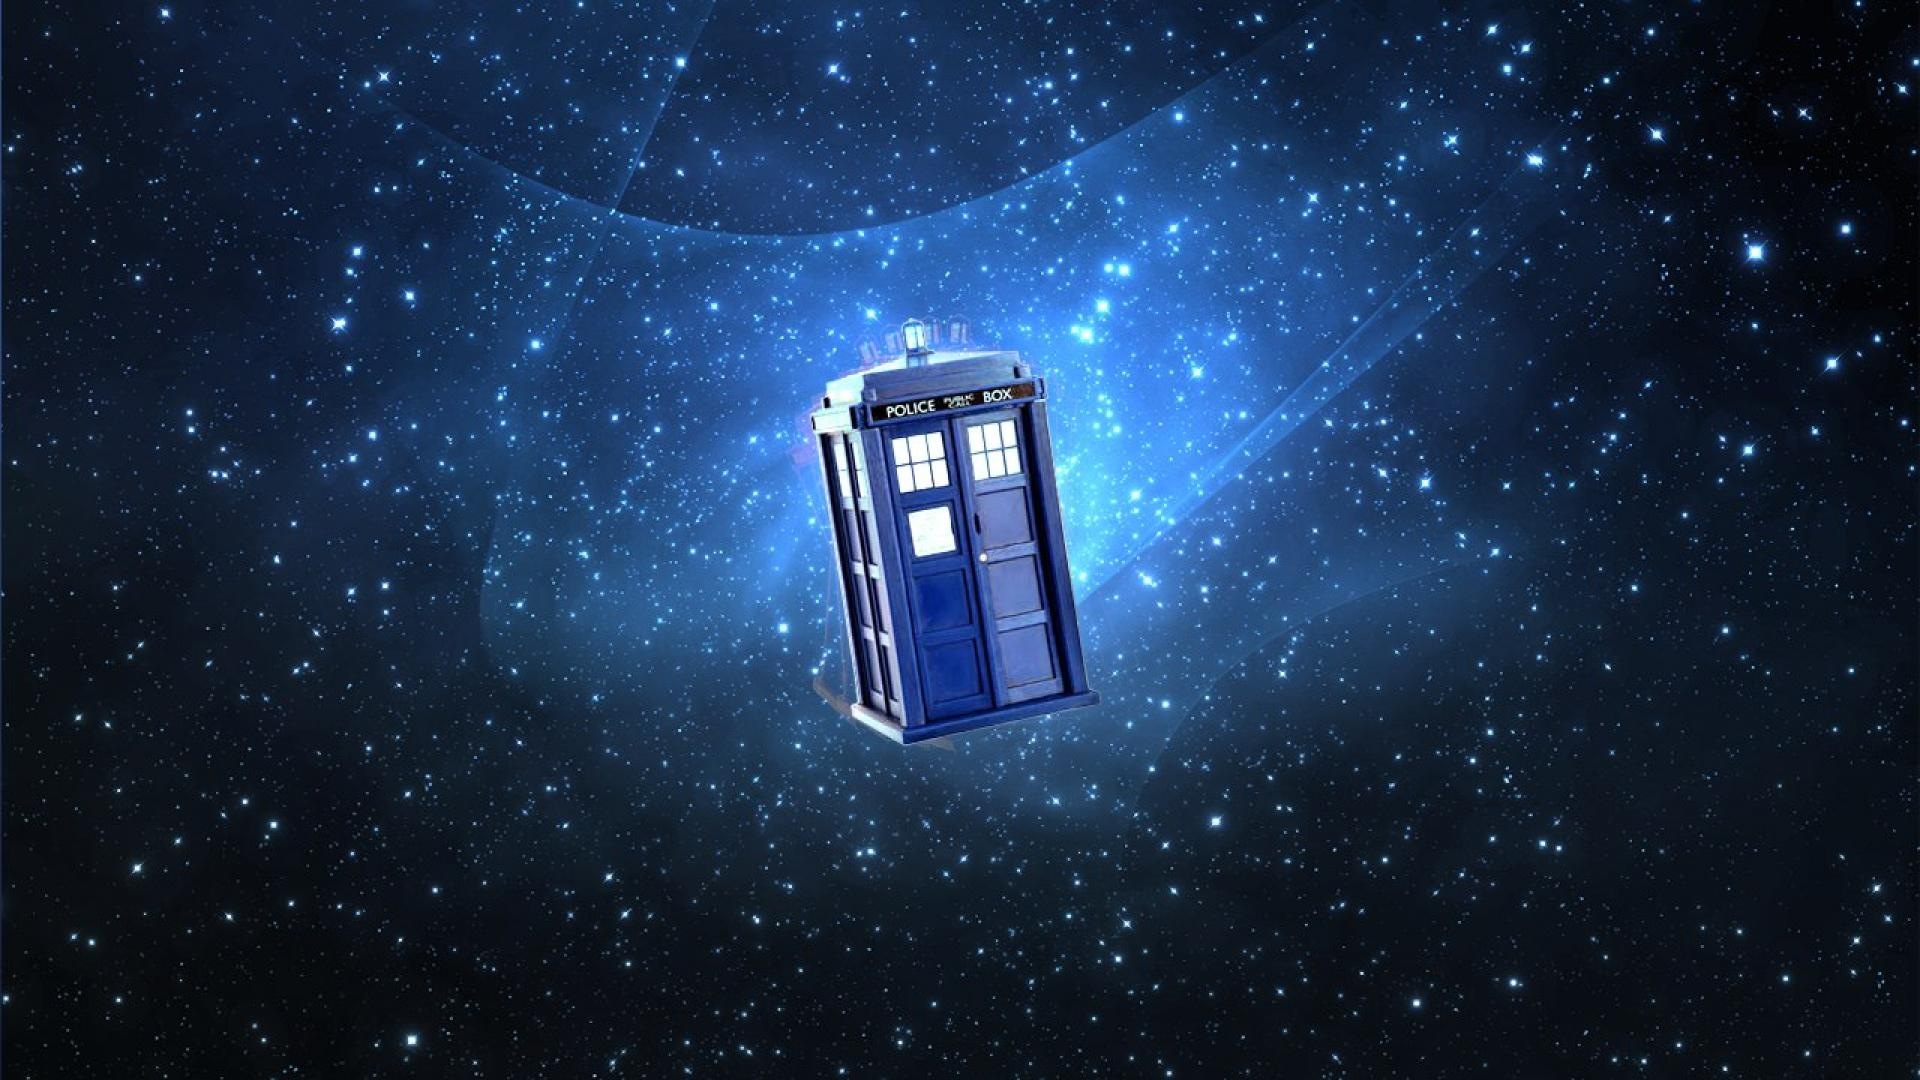 Doctor Who Wallpaper 1080p